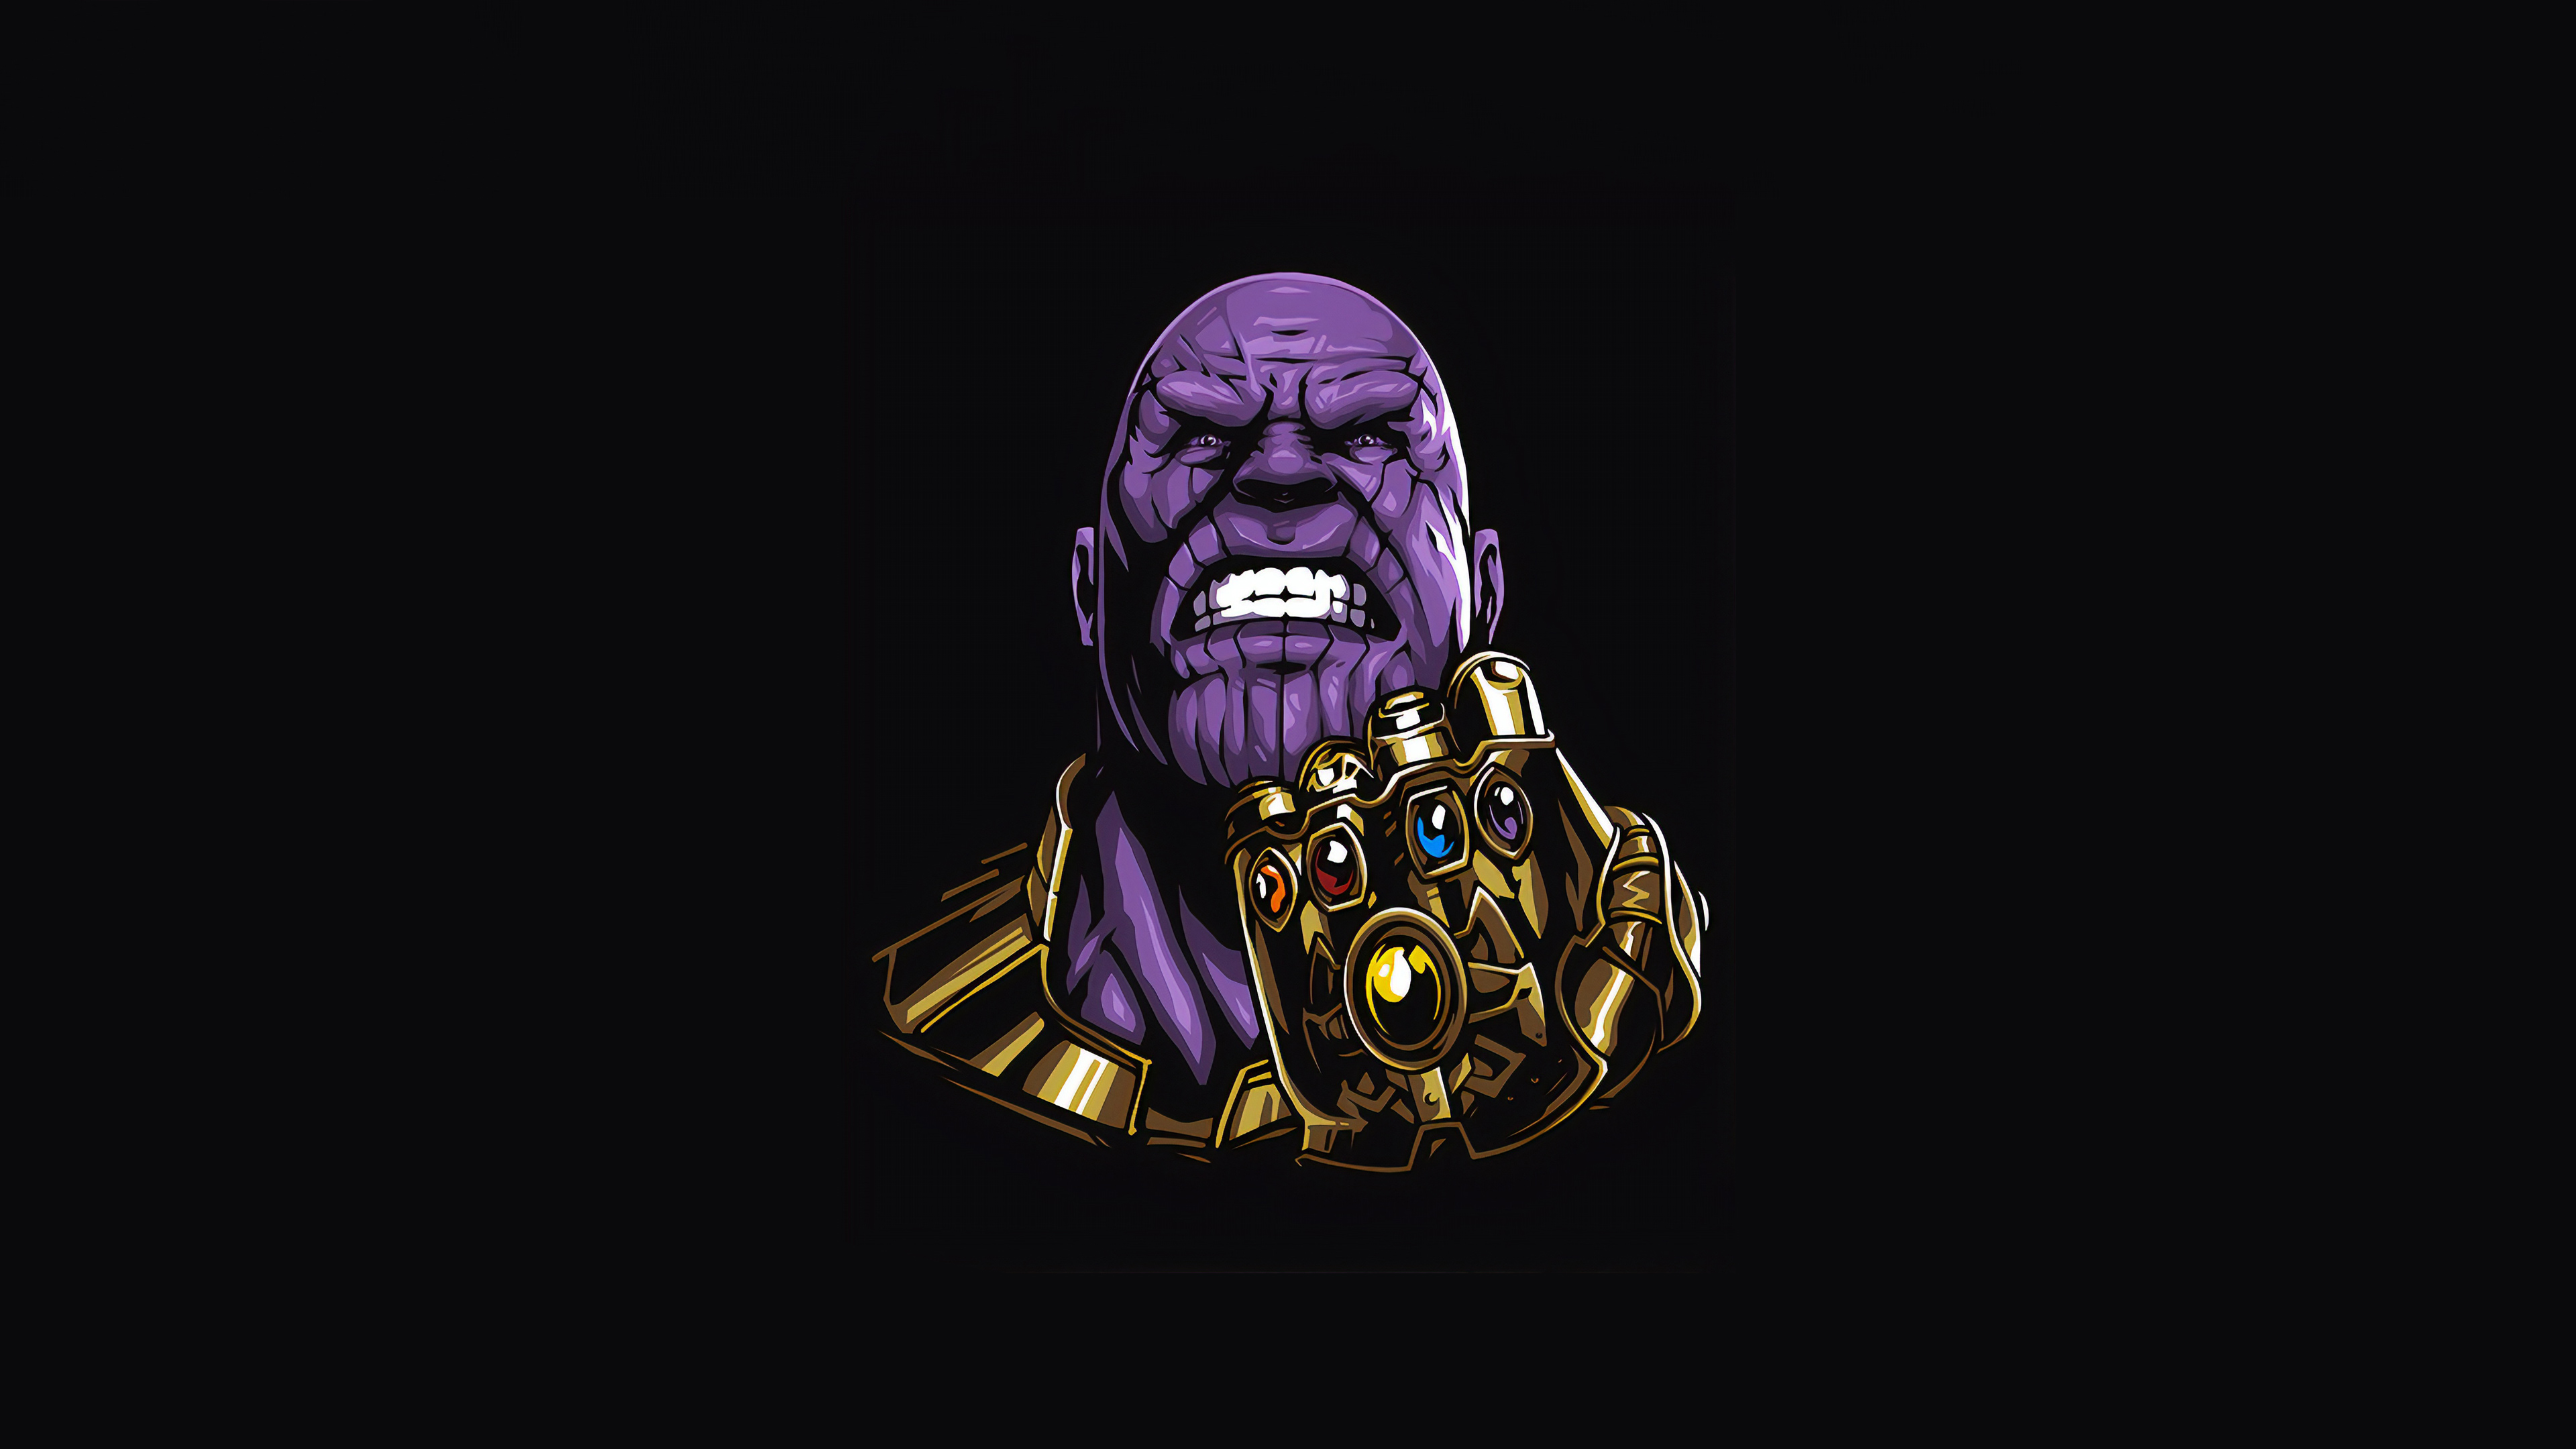 thanos minimal 1565053271 - Thanos Minimal - thanos-wallpapers, superheroes wallpapers, minimalist wallpapers, minimalism wallpapers, hd-wallpapers, digital art wallpapers, behance wallpapers, artwork wallpapers, artist wallpapers, 4k-wallpapers